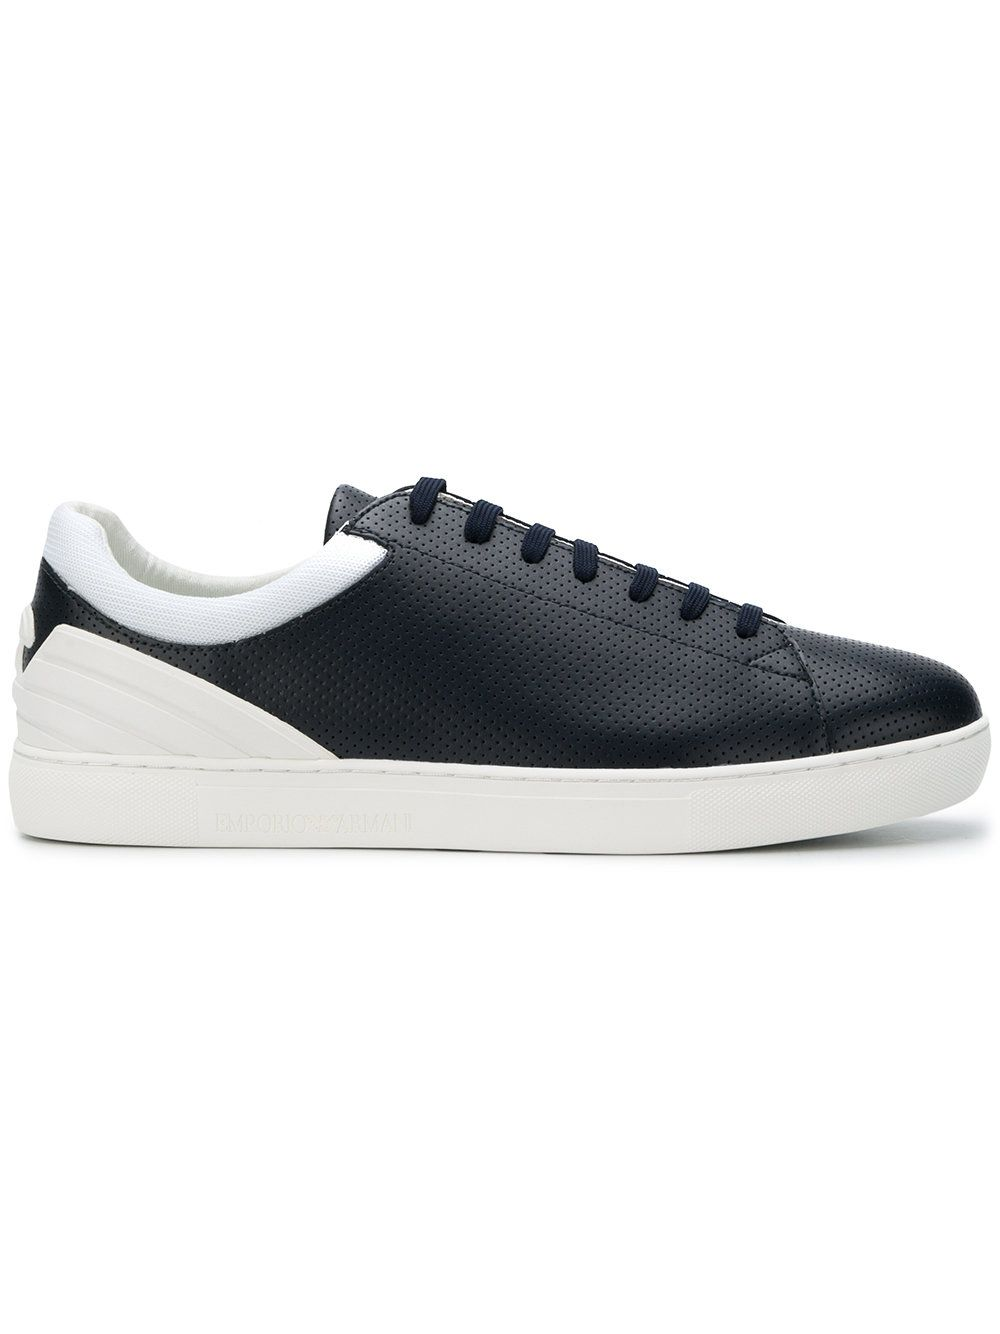 Ea7 Emporio Armani perforated texture lace-up sneakers official site online amazing price clearance with paypal footlocker online yXAPQE